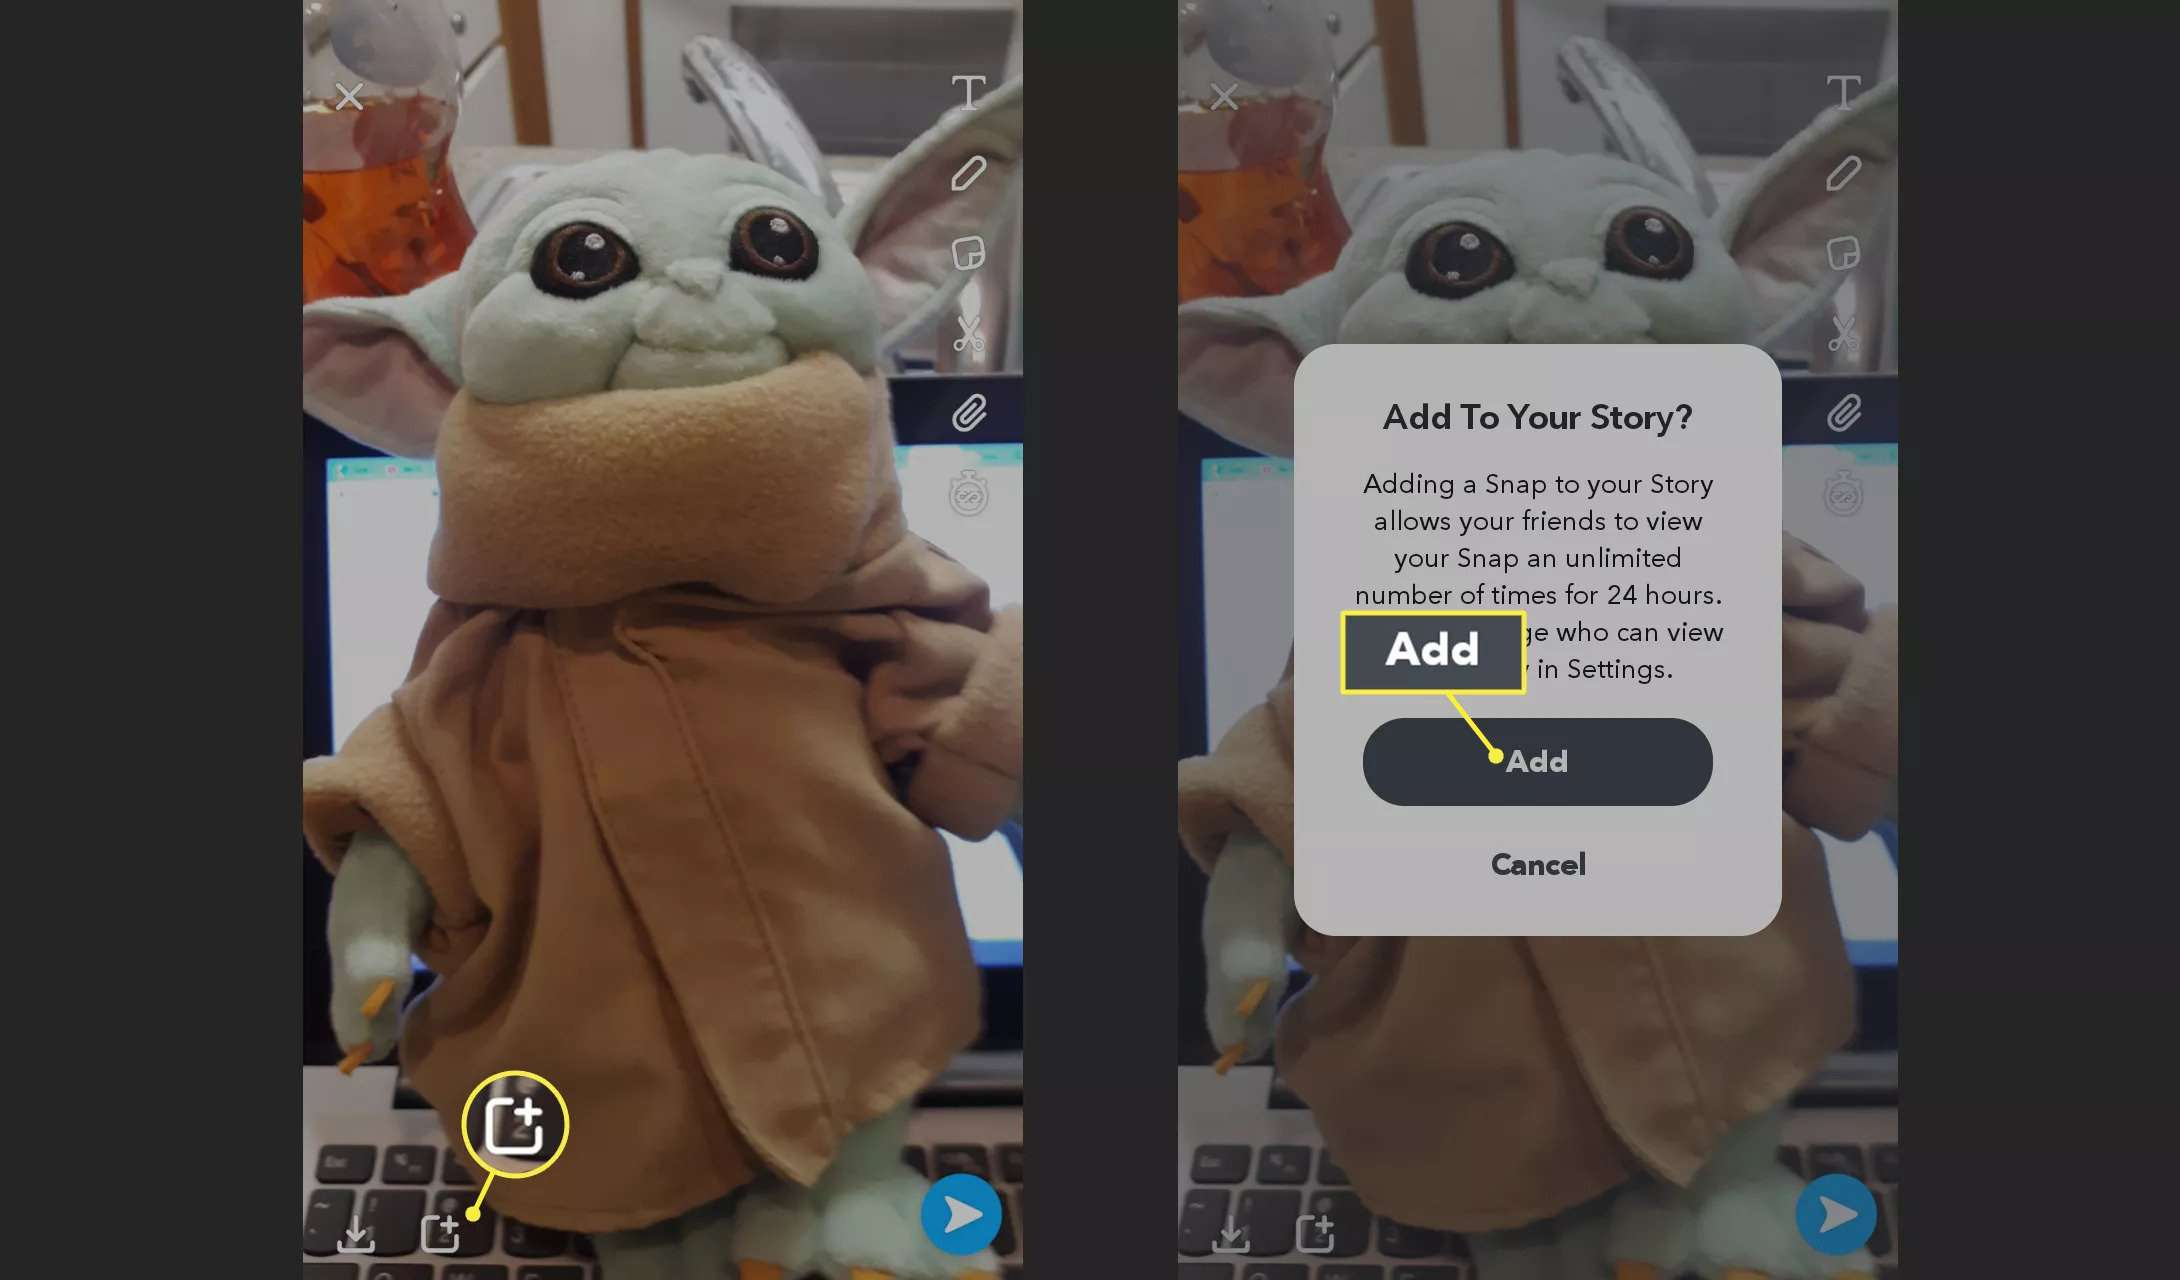 Add a snap to your Snapchat story